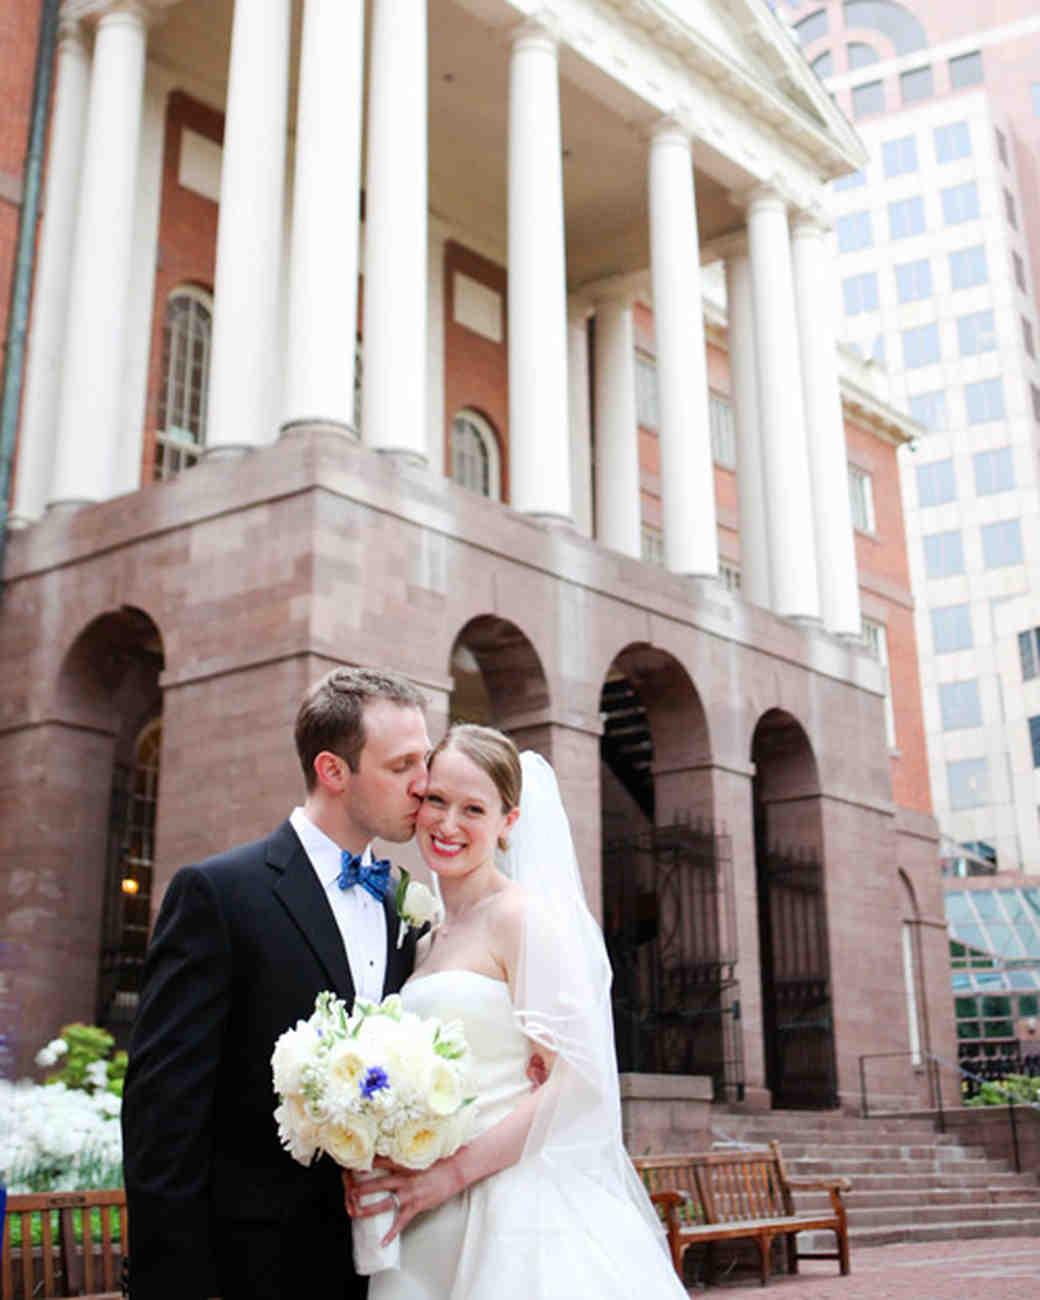 Wedding Ceremony Venues: 14 Favorite Wedding Ceremony Locations On The East Coast